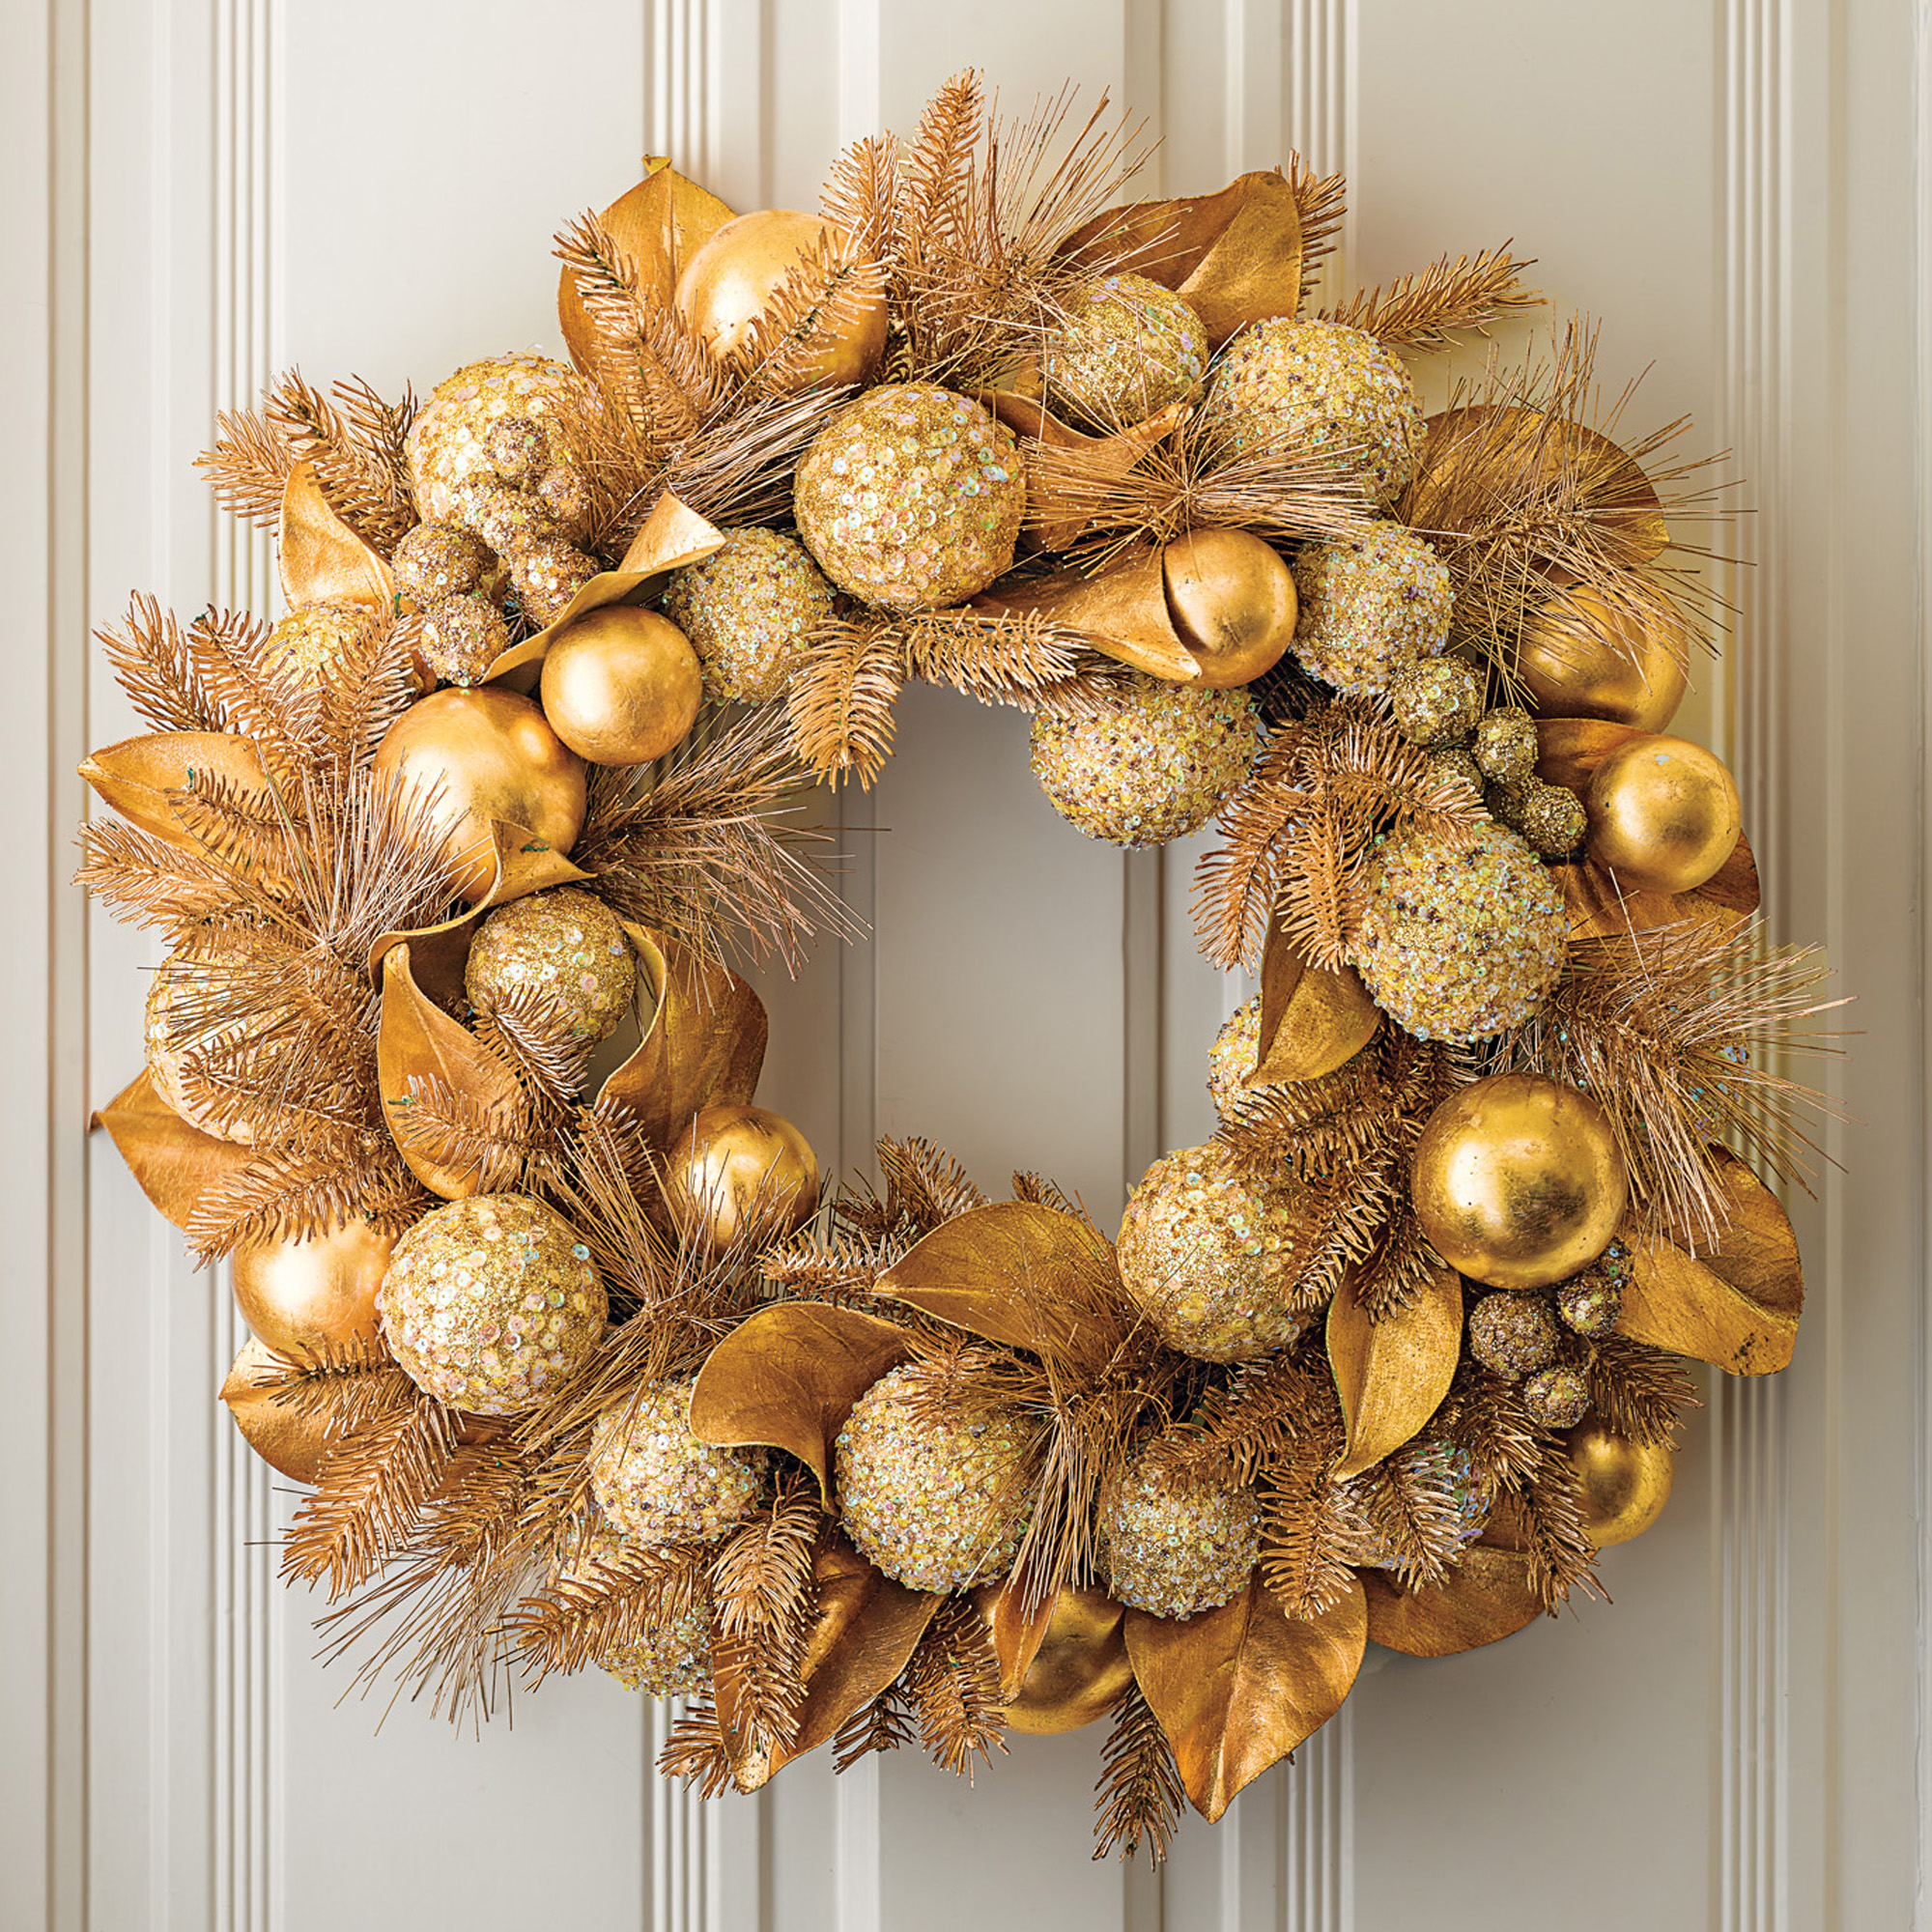 Windsor Forest Wreath